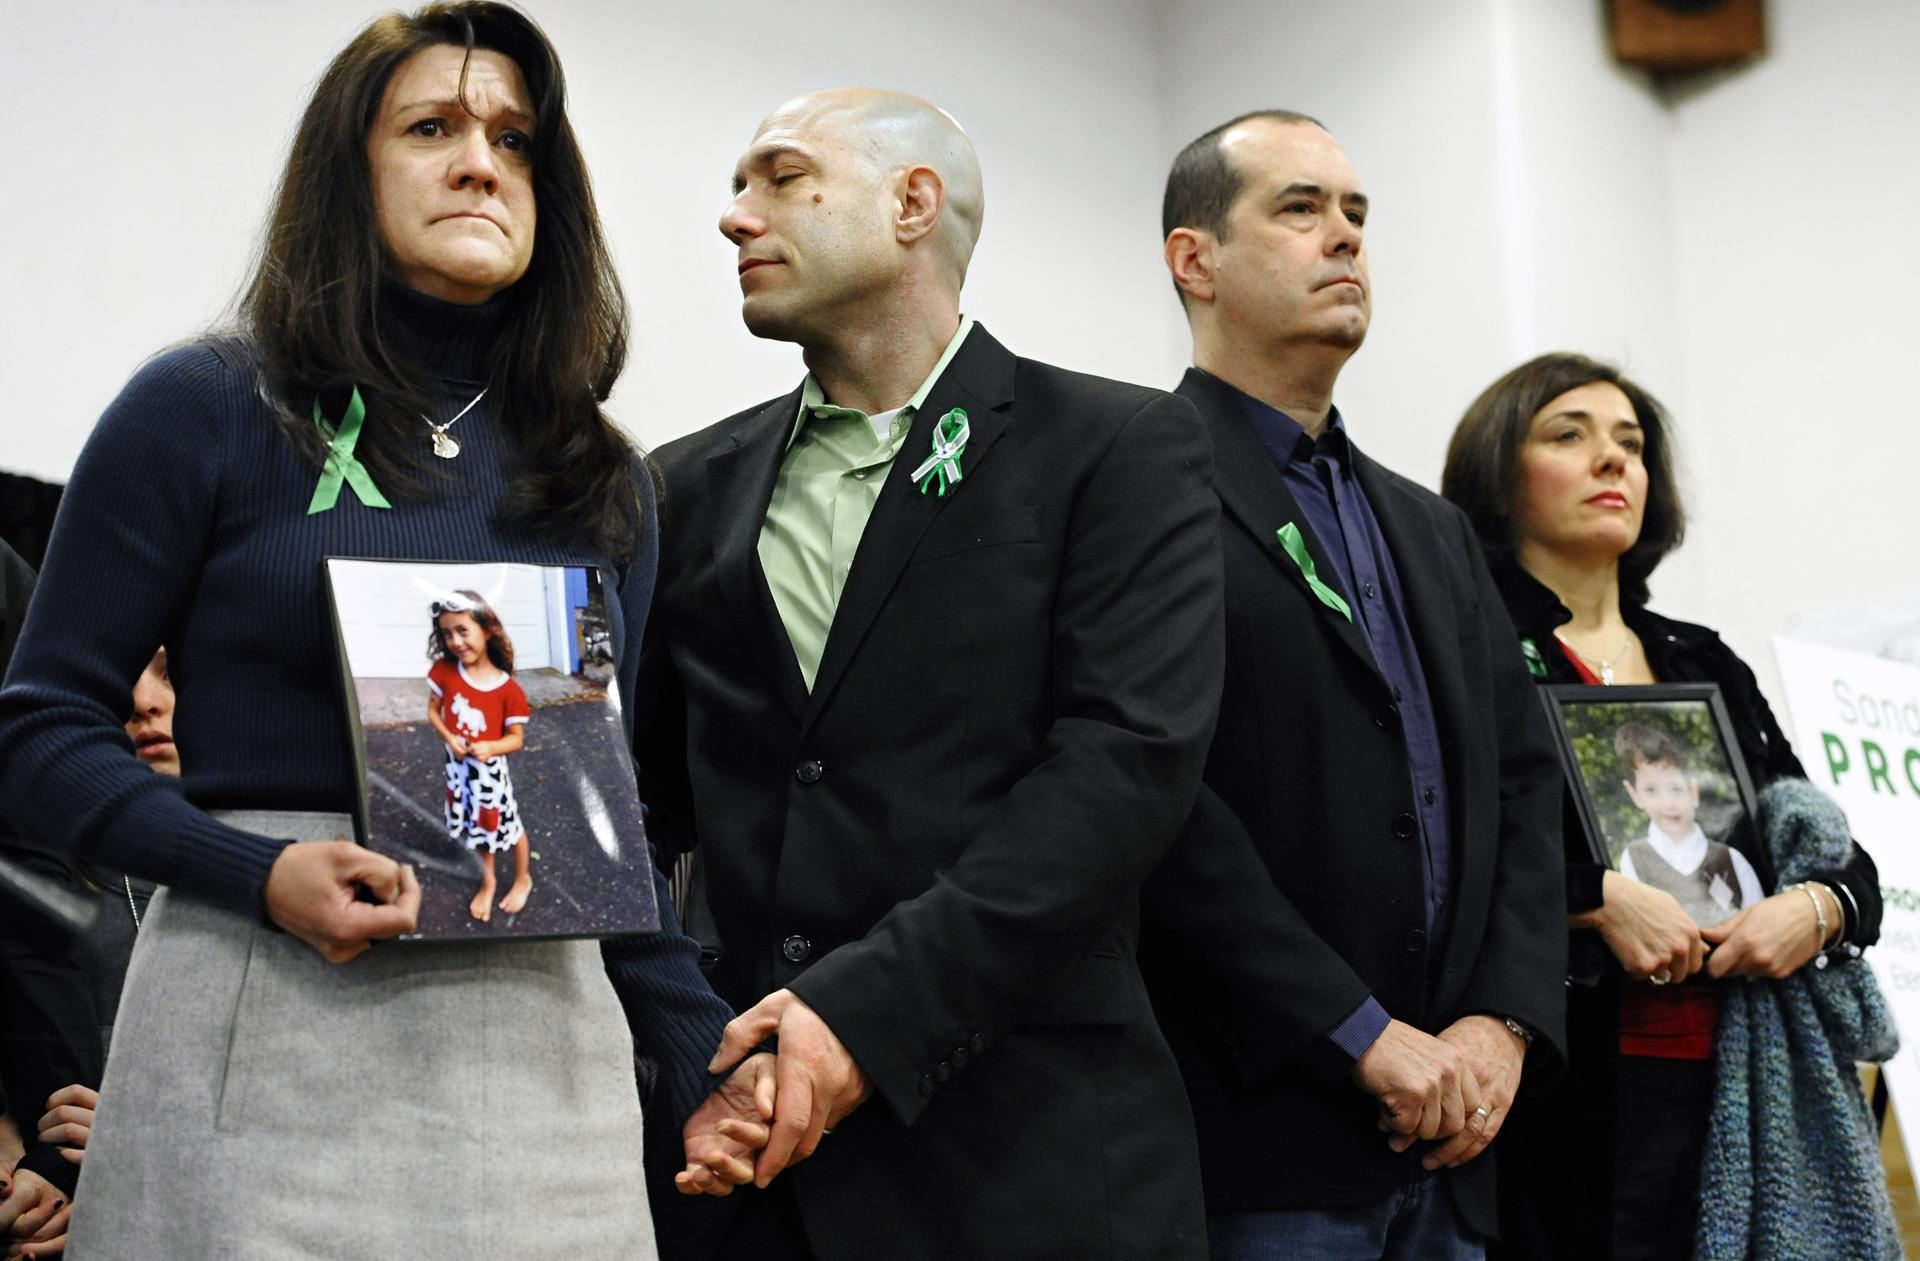 Jennifer Hensel (left) and Jeremy Richman (center left), parents of Sandy Hook shooting victim Avielle Rose Richman, at a news conference at Edmond Town Hall in Newtown, Conn., a month after the shooting.